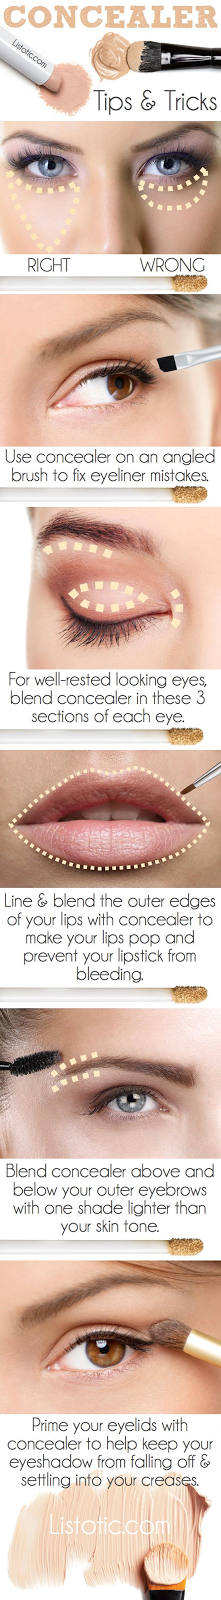 Concealer Tips and Tricks: Knowing How to Use Your Concealer